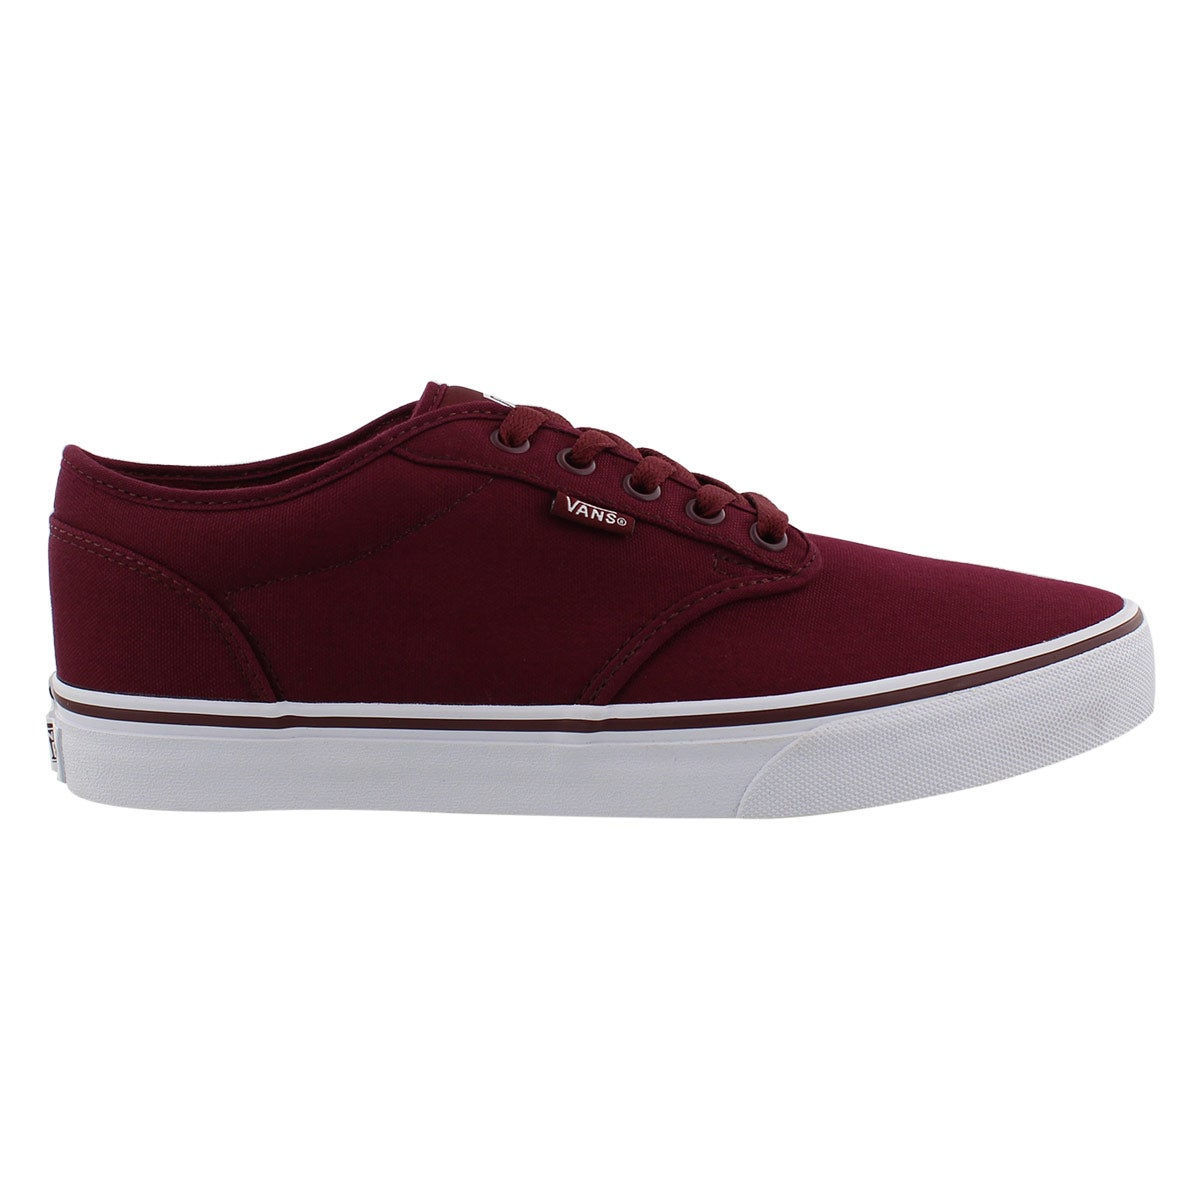 Mns Atwood wine canvas lace up sneaker